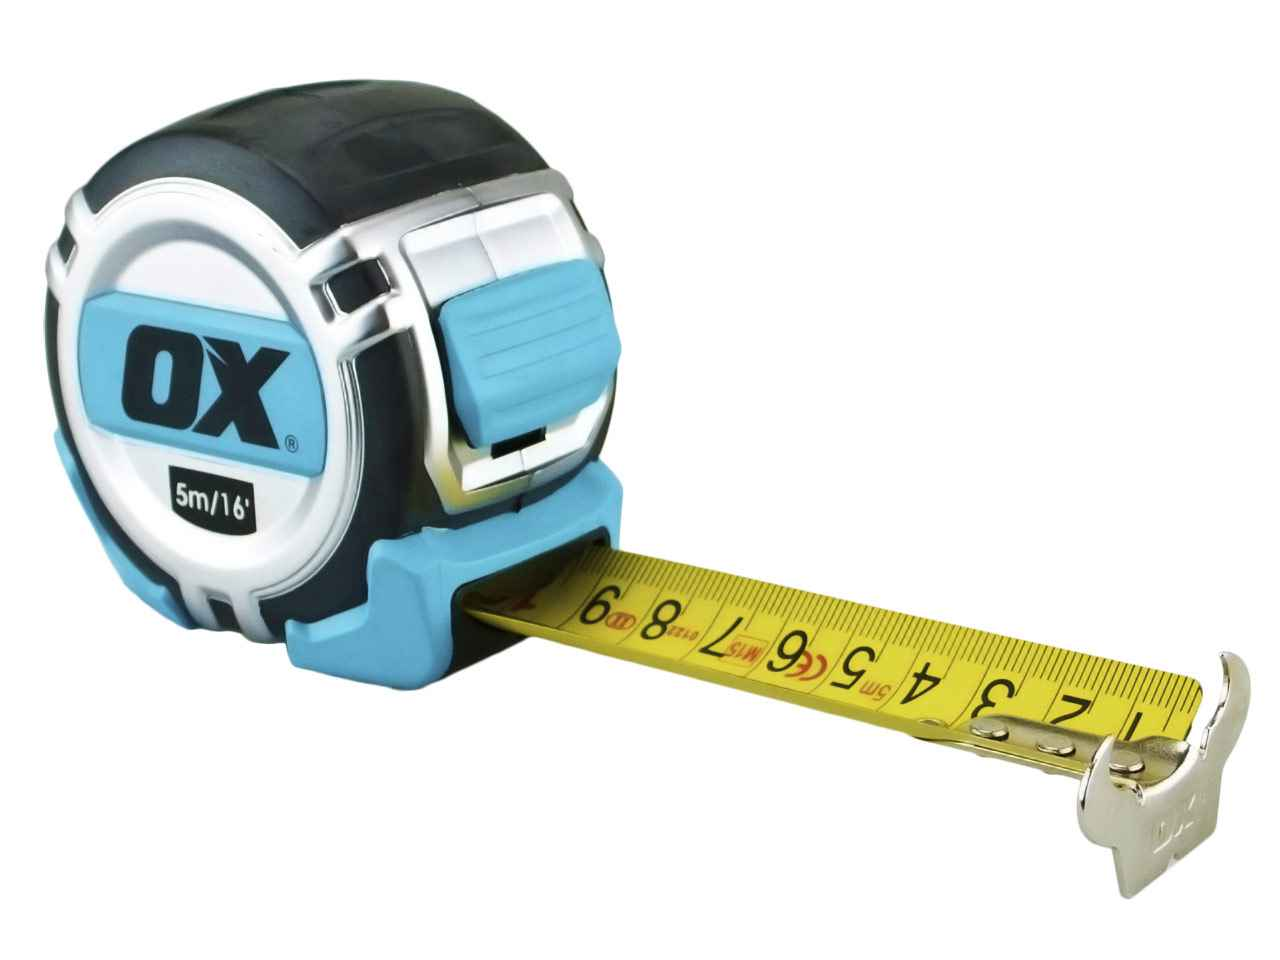 ox tools oxp028705 pro tape measure heavy duty 5m 16ft metric and imperial